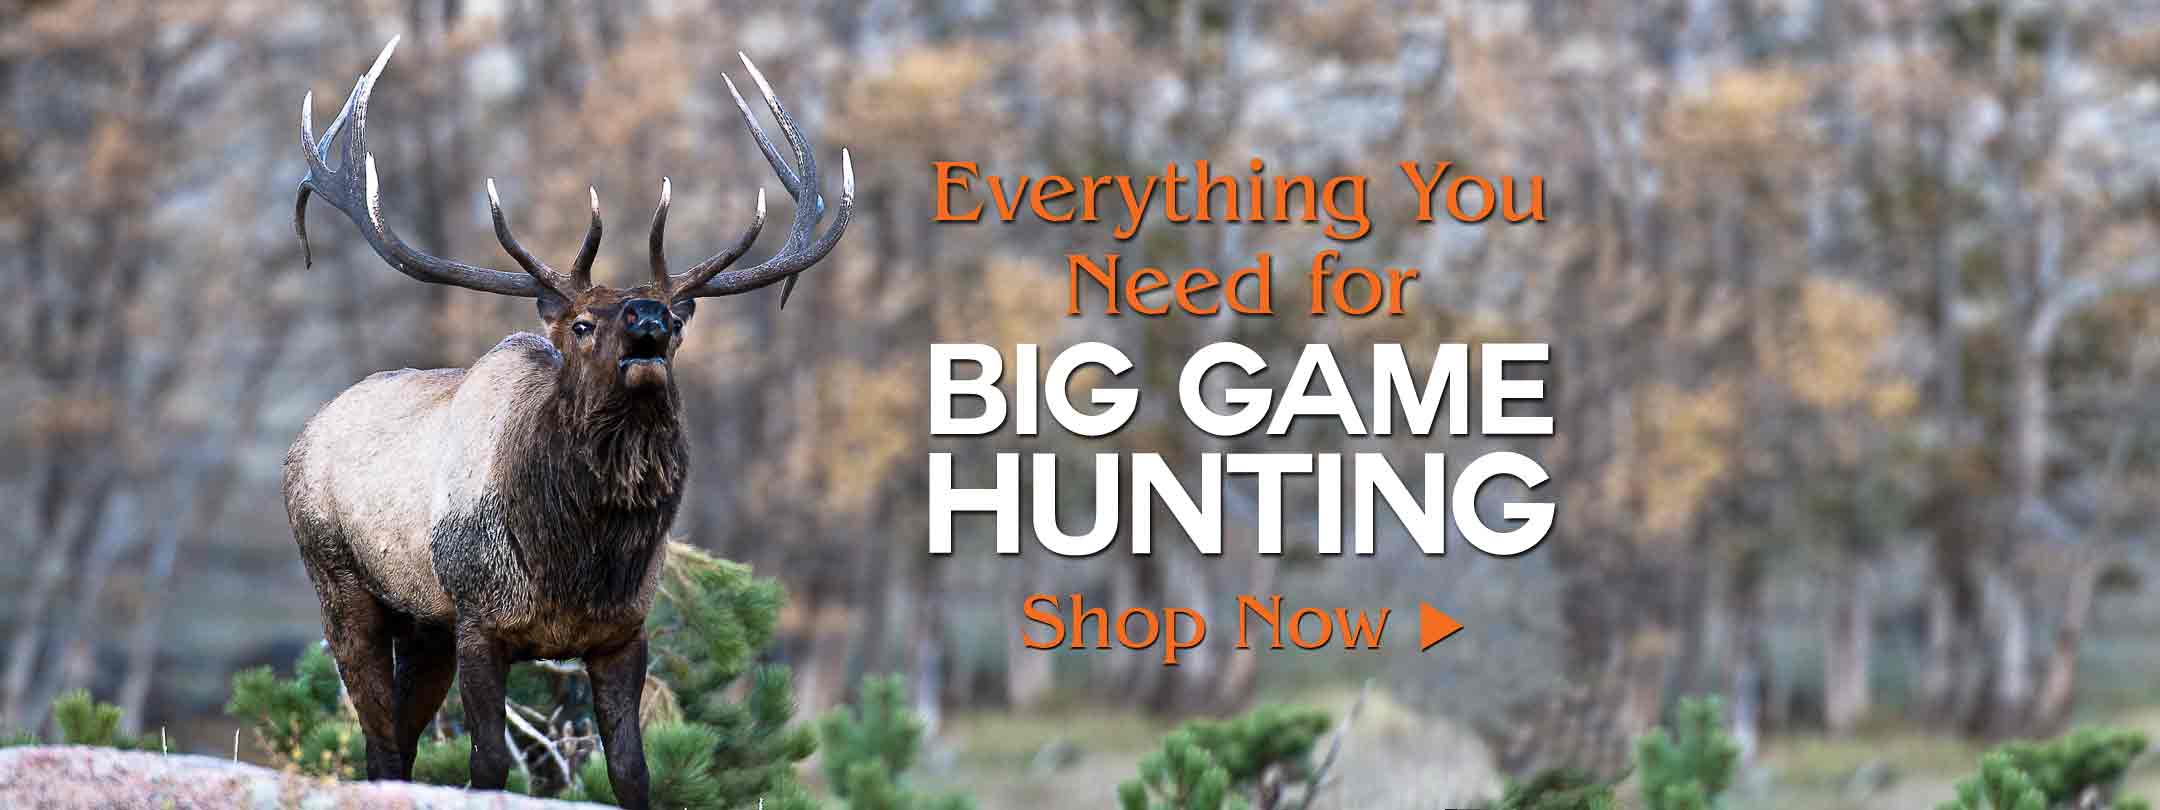 Everything You Need for Big Game Hunting